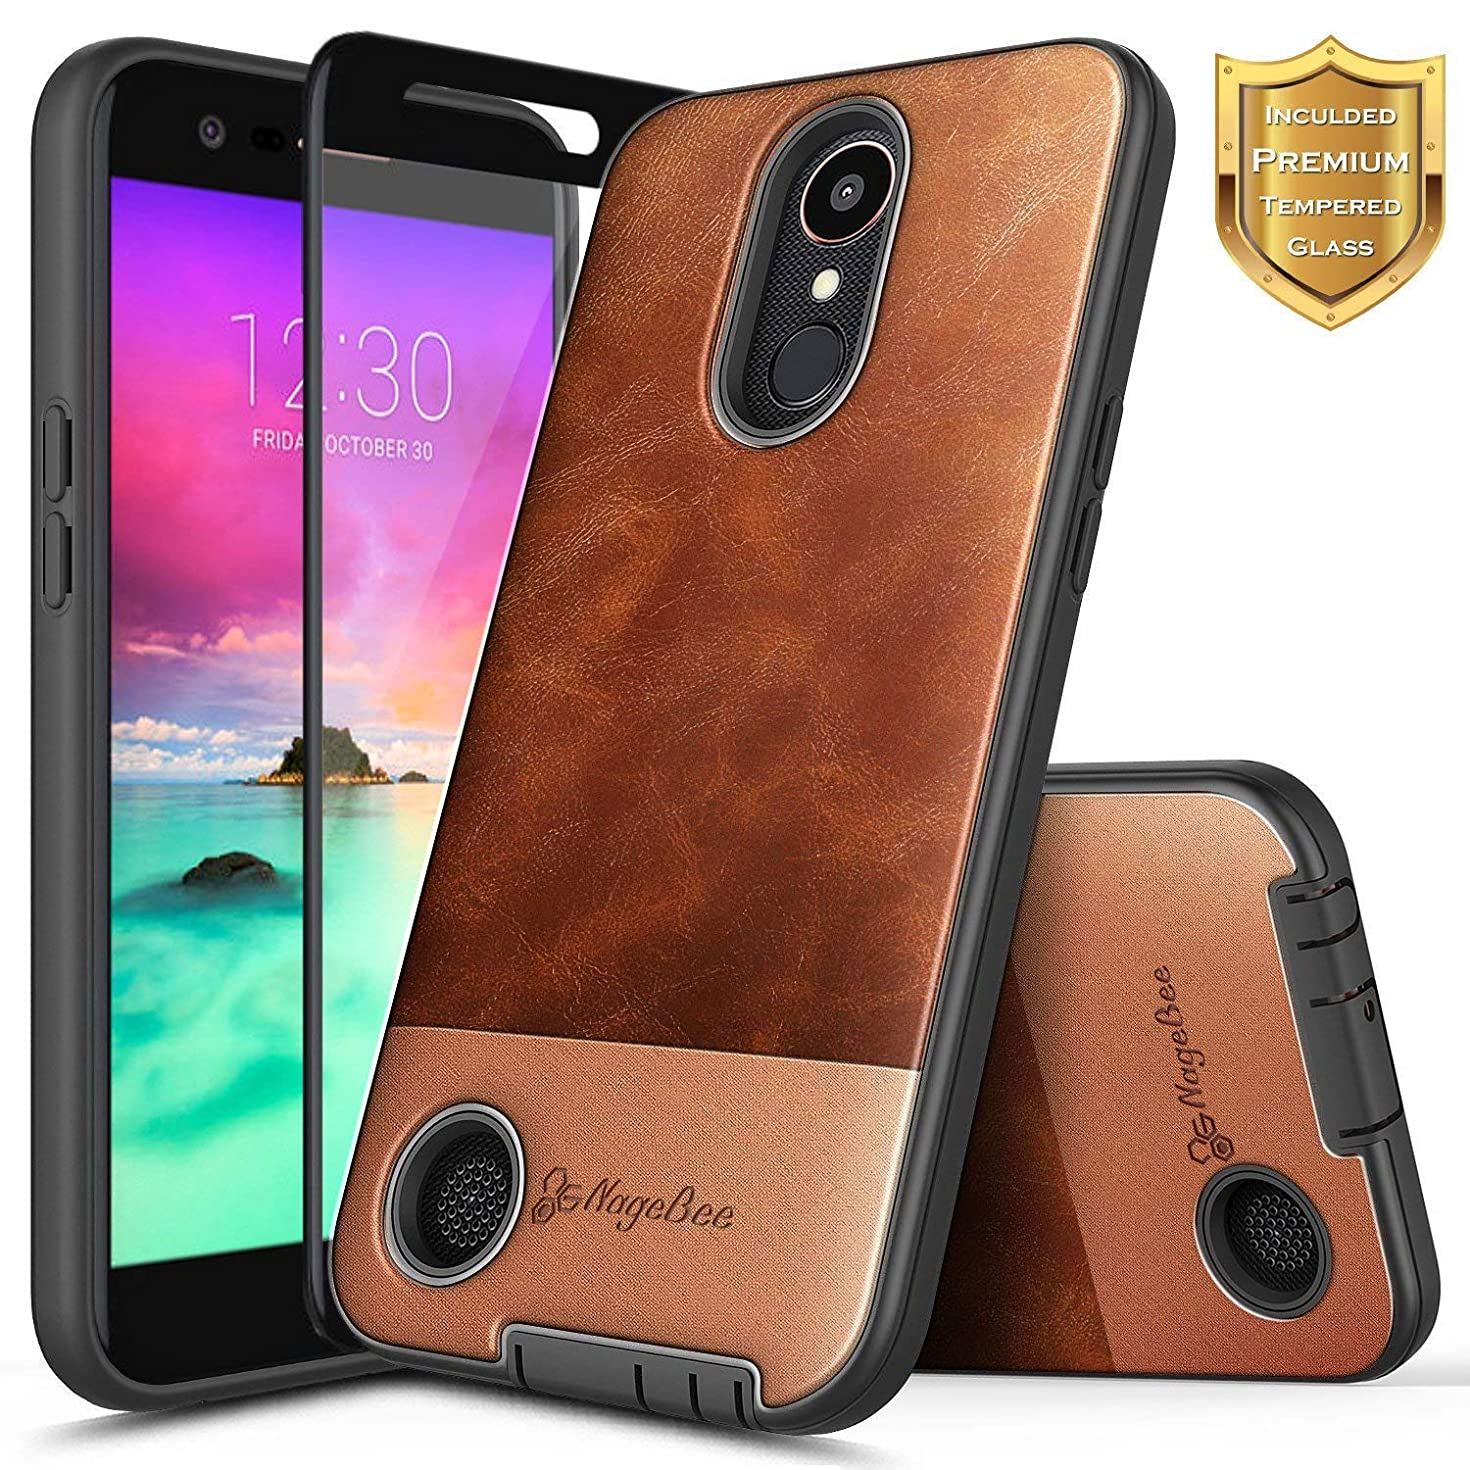 LG K20 Plus Case, LG K20 V (Verizon) /V5 /K10 2017 /Harmony/LG Grace LTE w/[Tempered Glass Screen Protector], NageBee Premium Cowhide Leather Armor Defender Dual Layer Shock Proof Hybrid Case -Brown